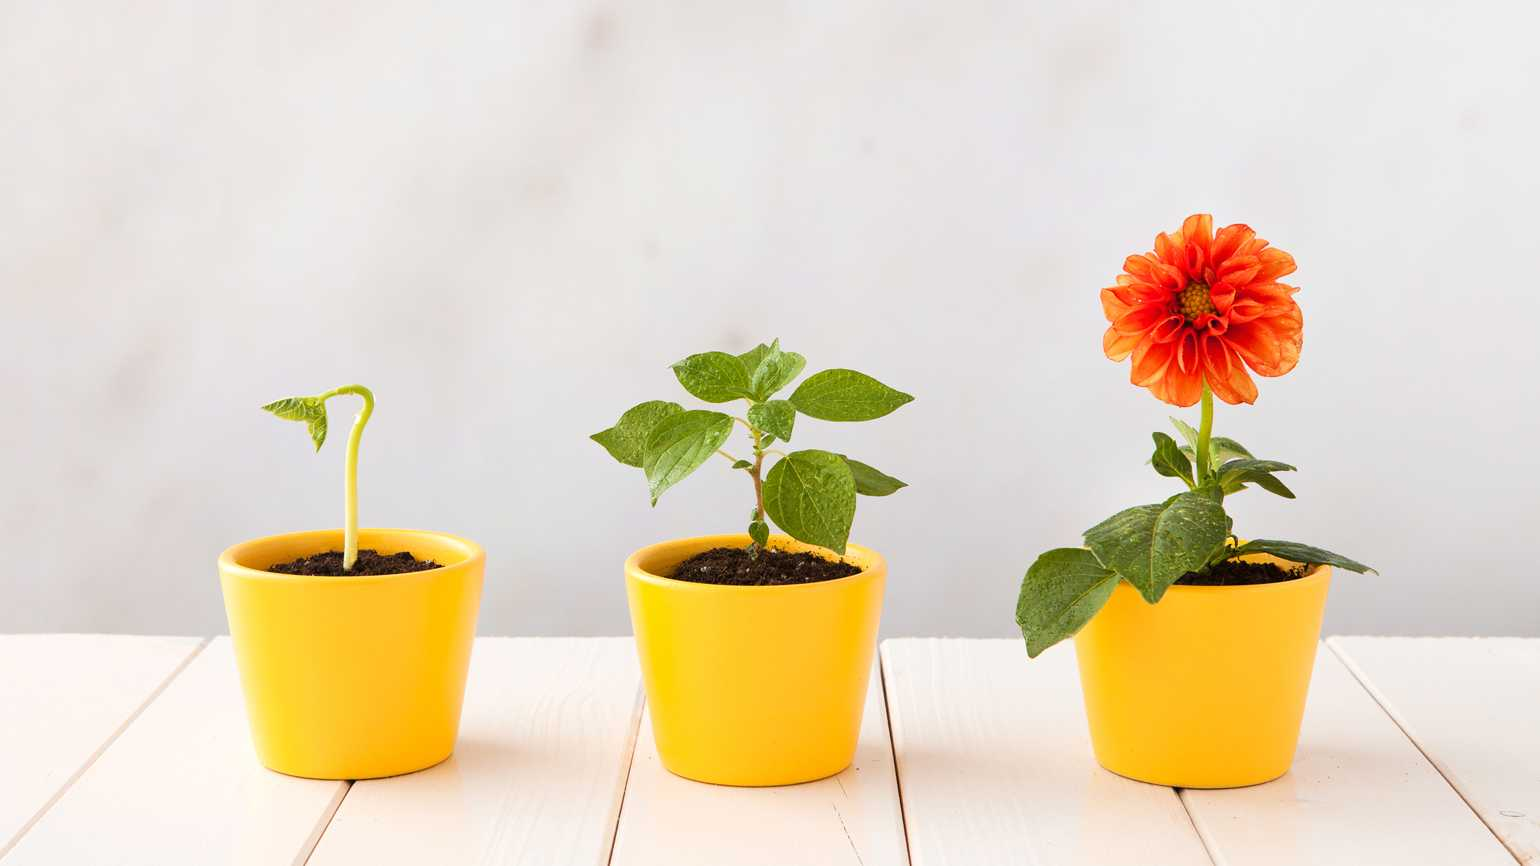 Three flower pots representing three stages of growth.